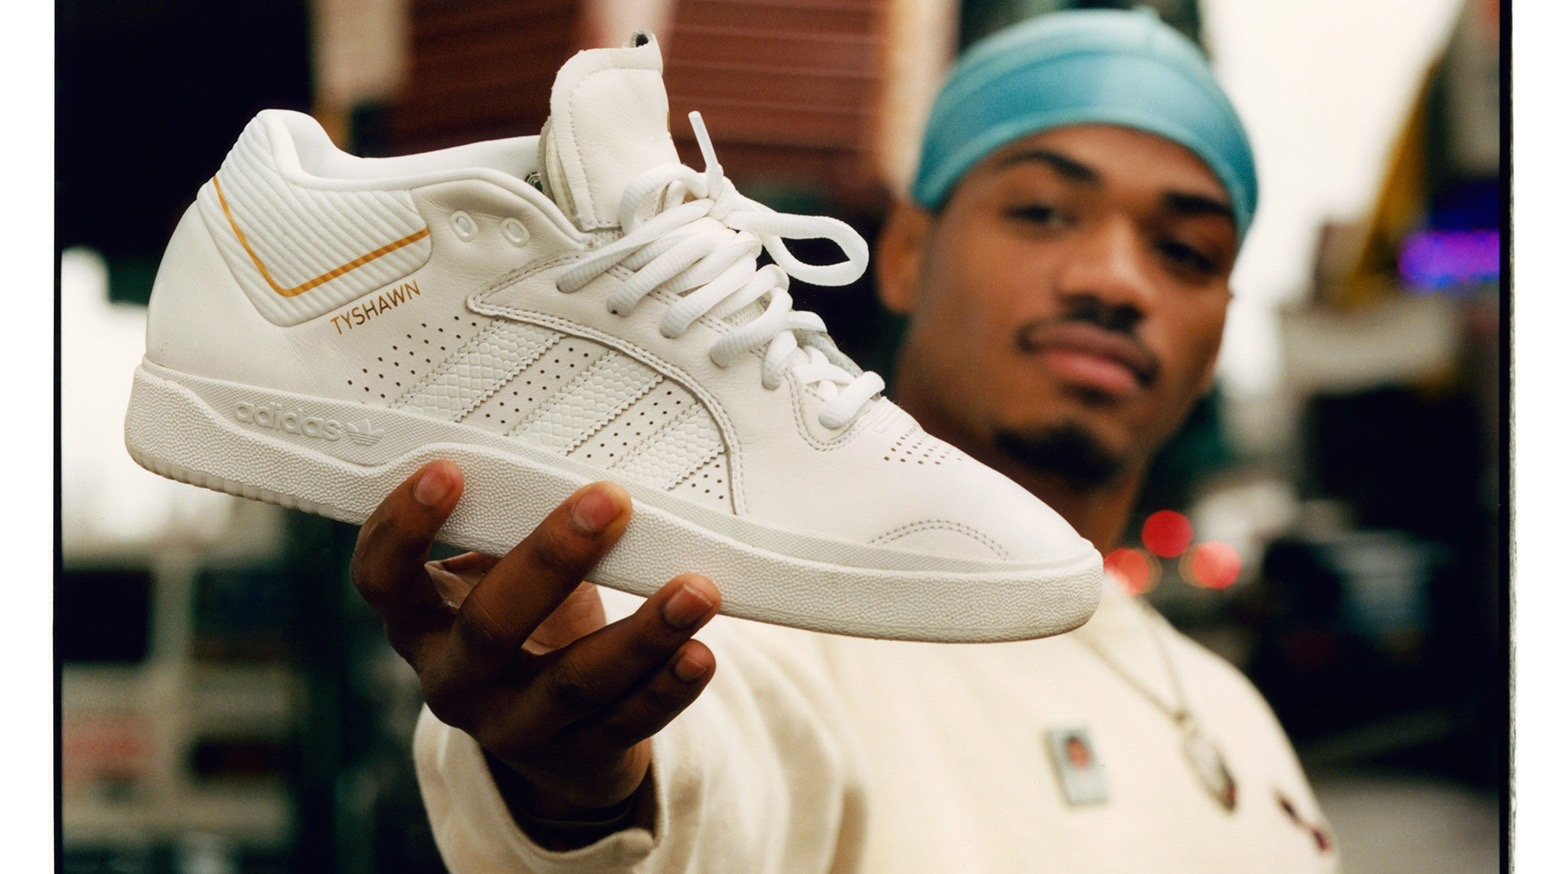 512140 FW19 TYSHAWN Supporting Imagery TripleWhite Lifestyle 02